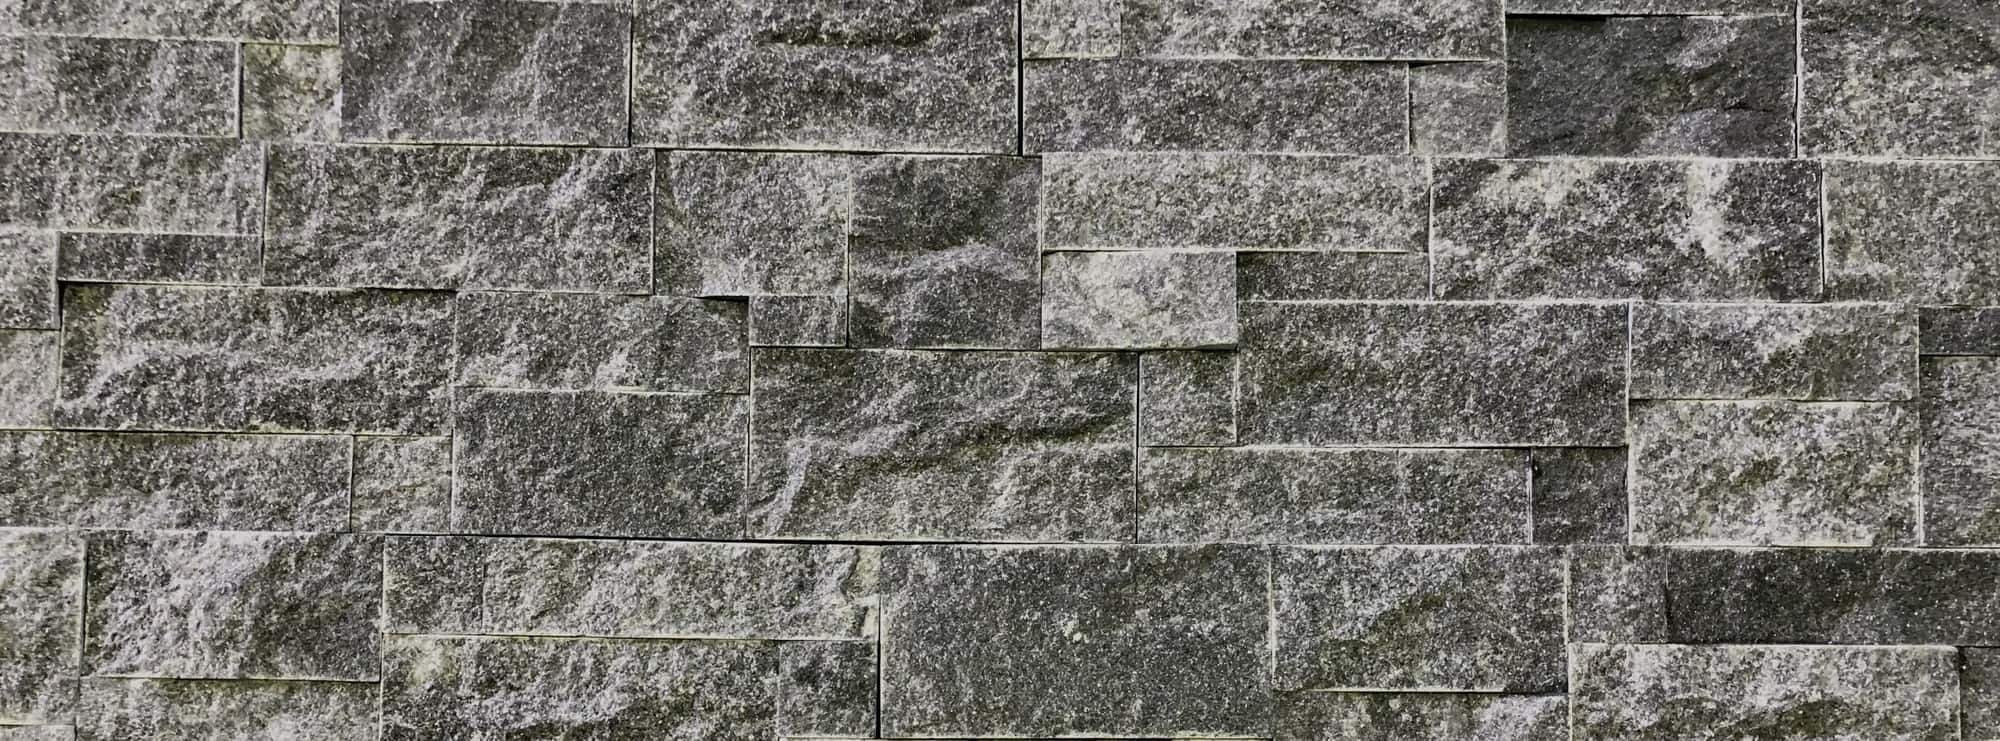 Stackstone Wall Cladding